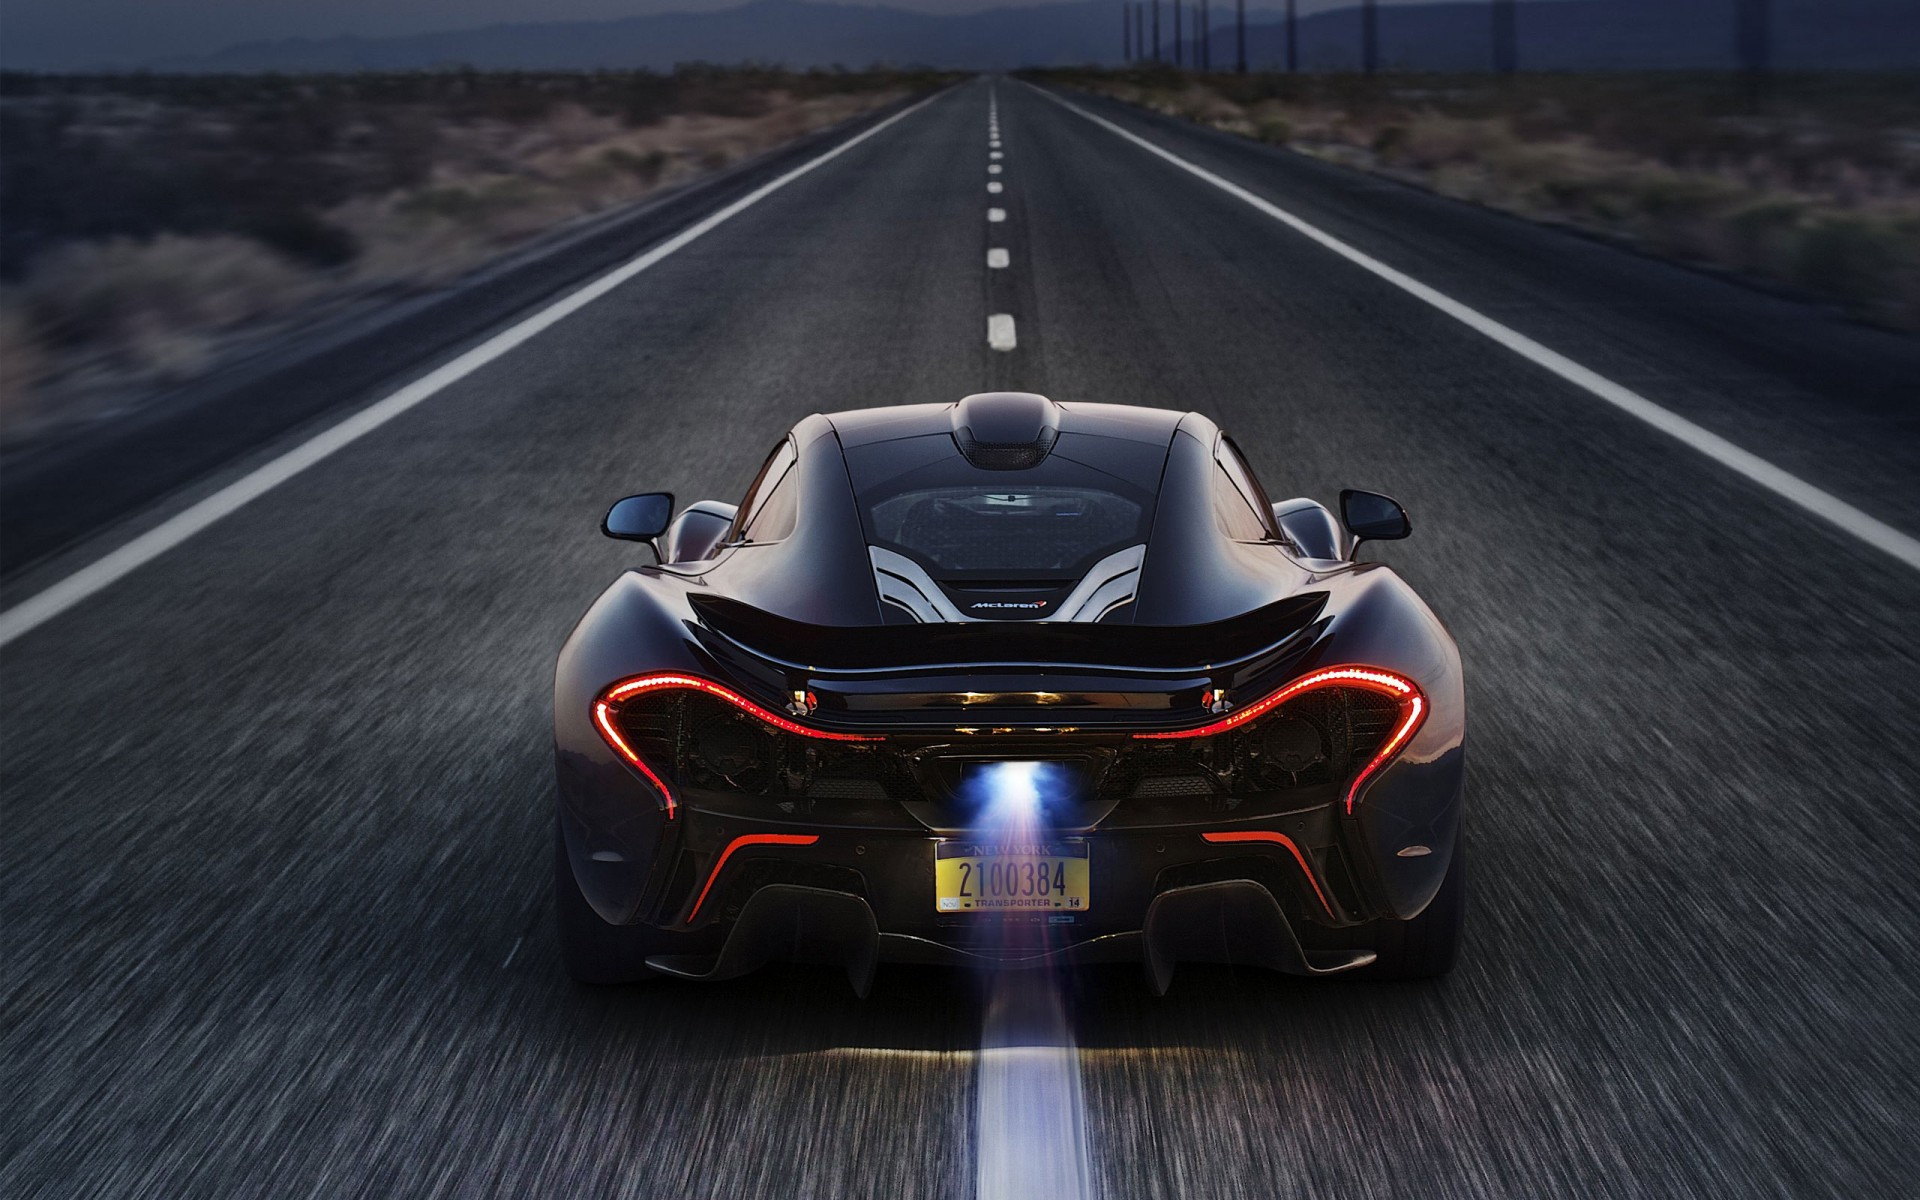 Bmw M Wallpaper Iphone X 2014 Mclaren P1 Wallpaper Hd Car Wallpapers Id 3839